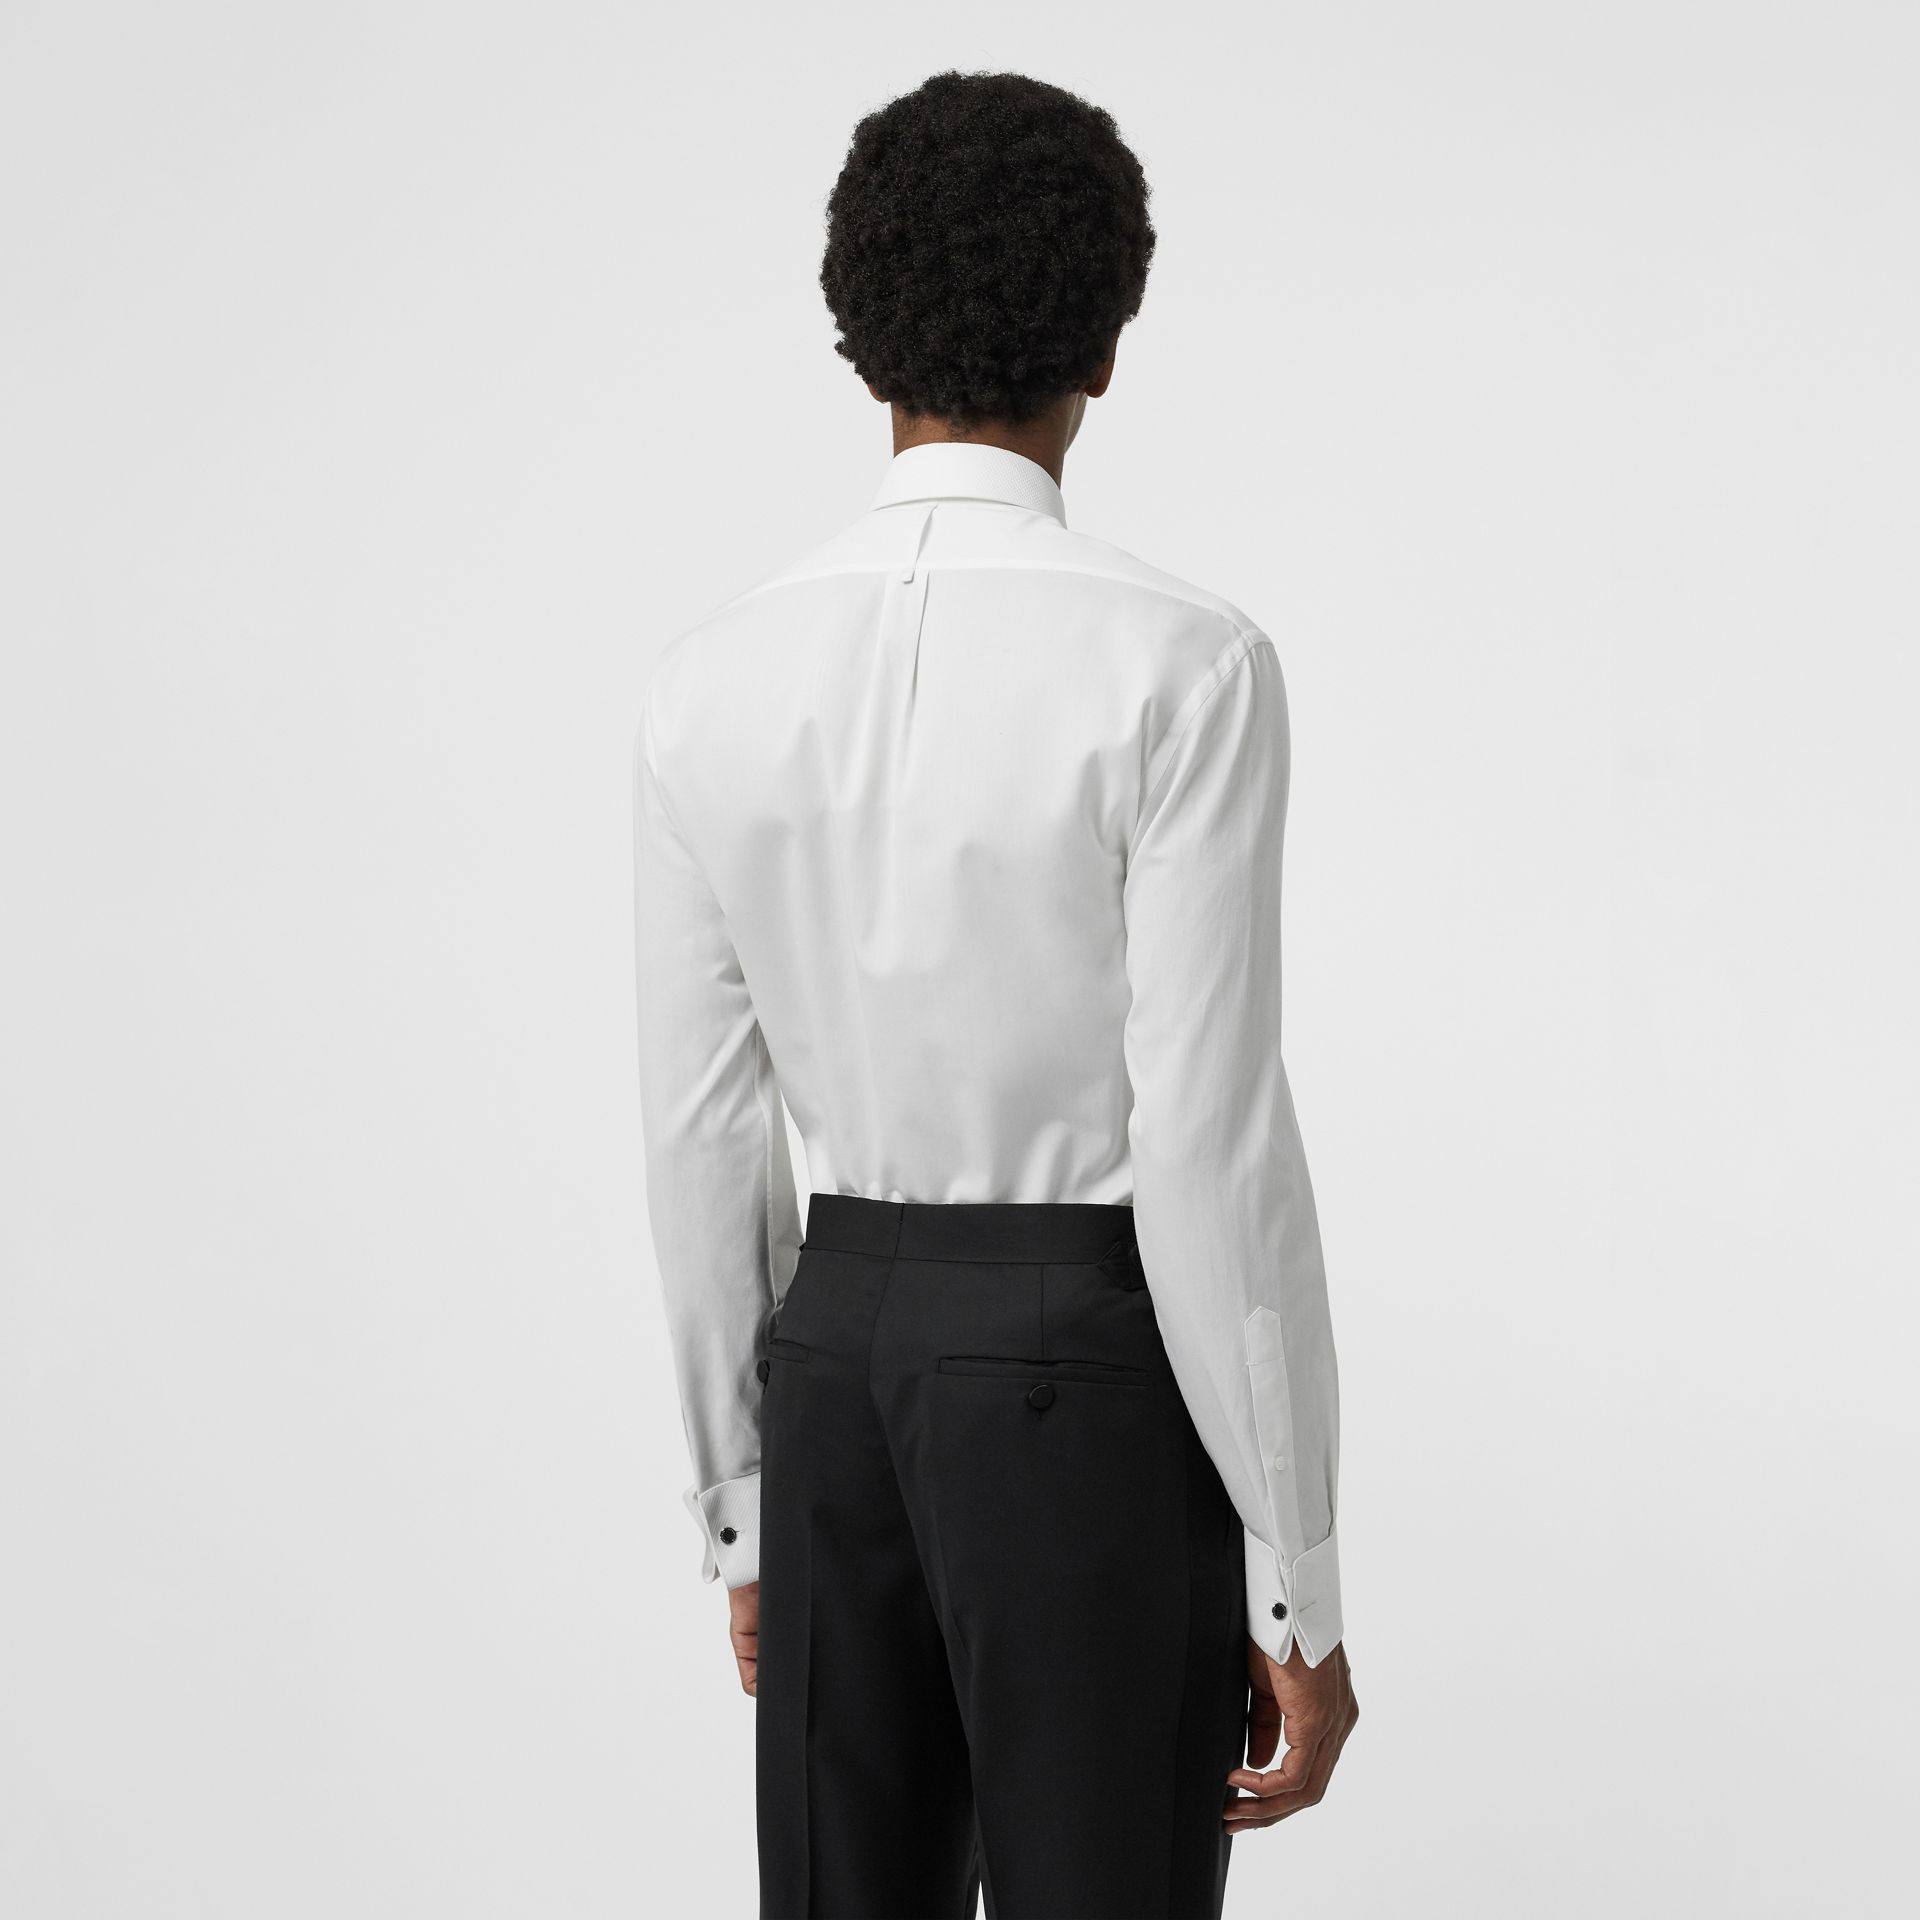 Modern Fit Panelled Bib Cotton Twill Evening Shirt in White - Men | Burberry - gallery image 2